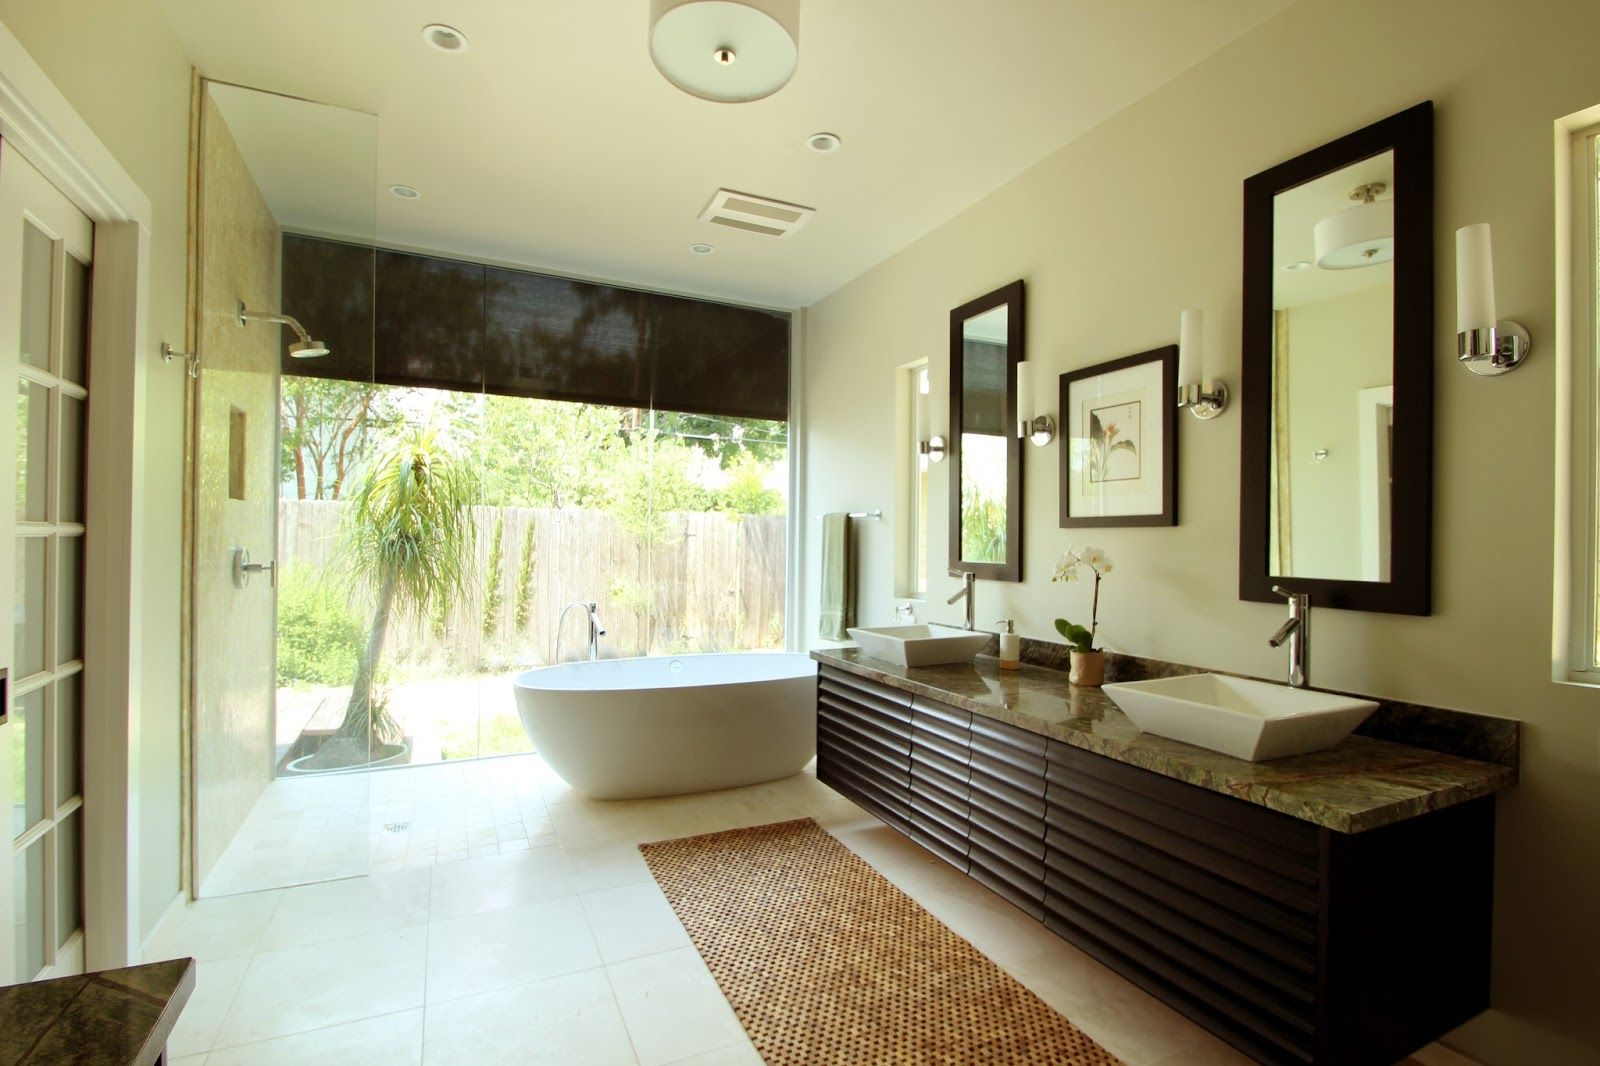 Home ideas for modern master bathroom master baths Beautiful bathrooms and bedrooms magazine